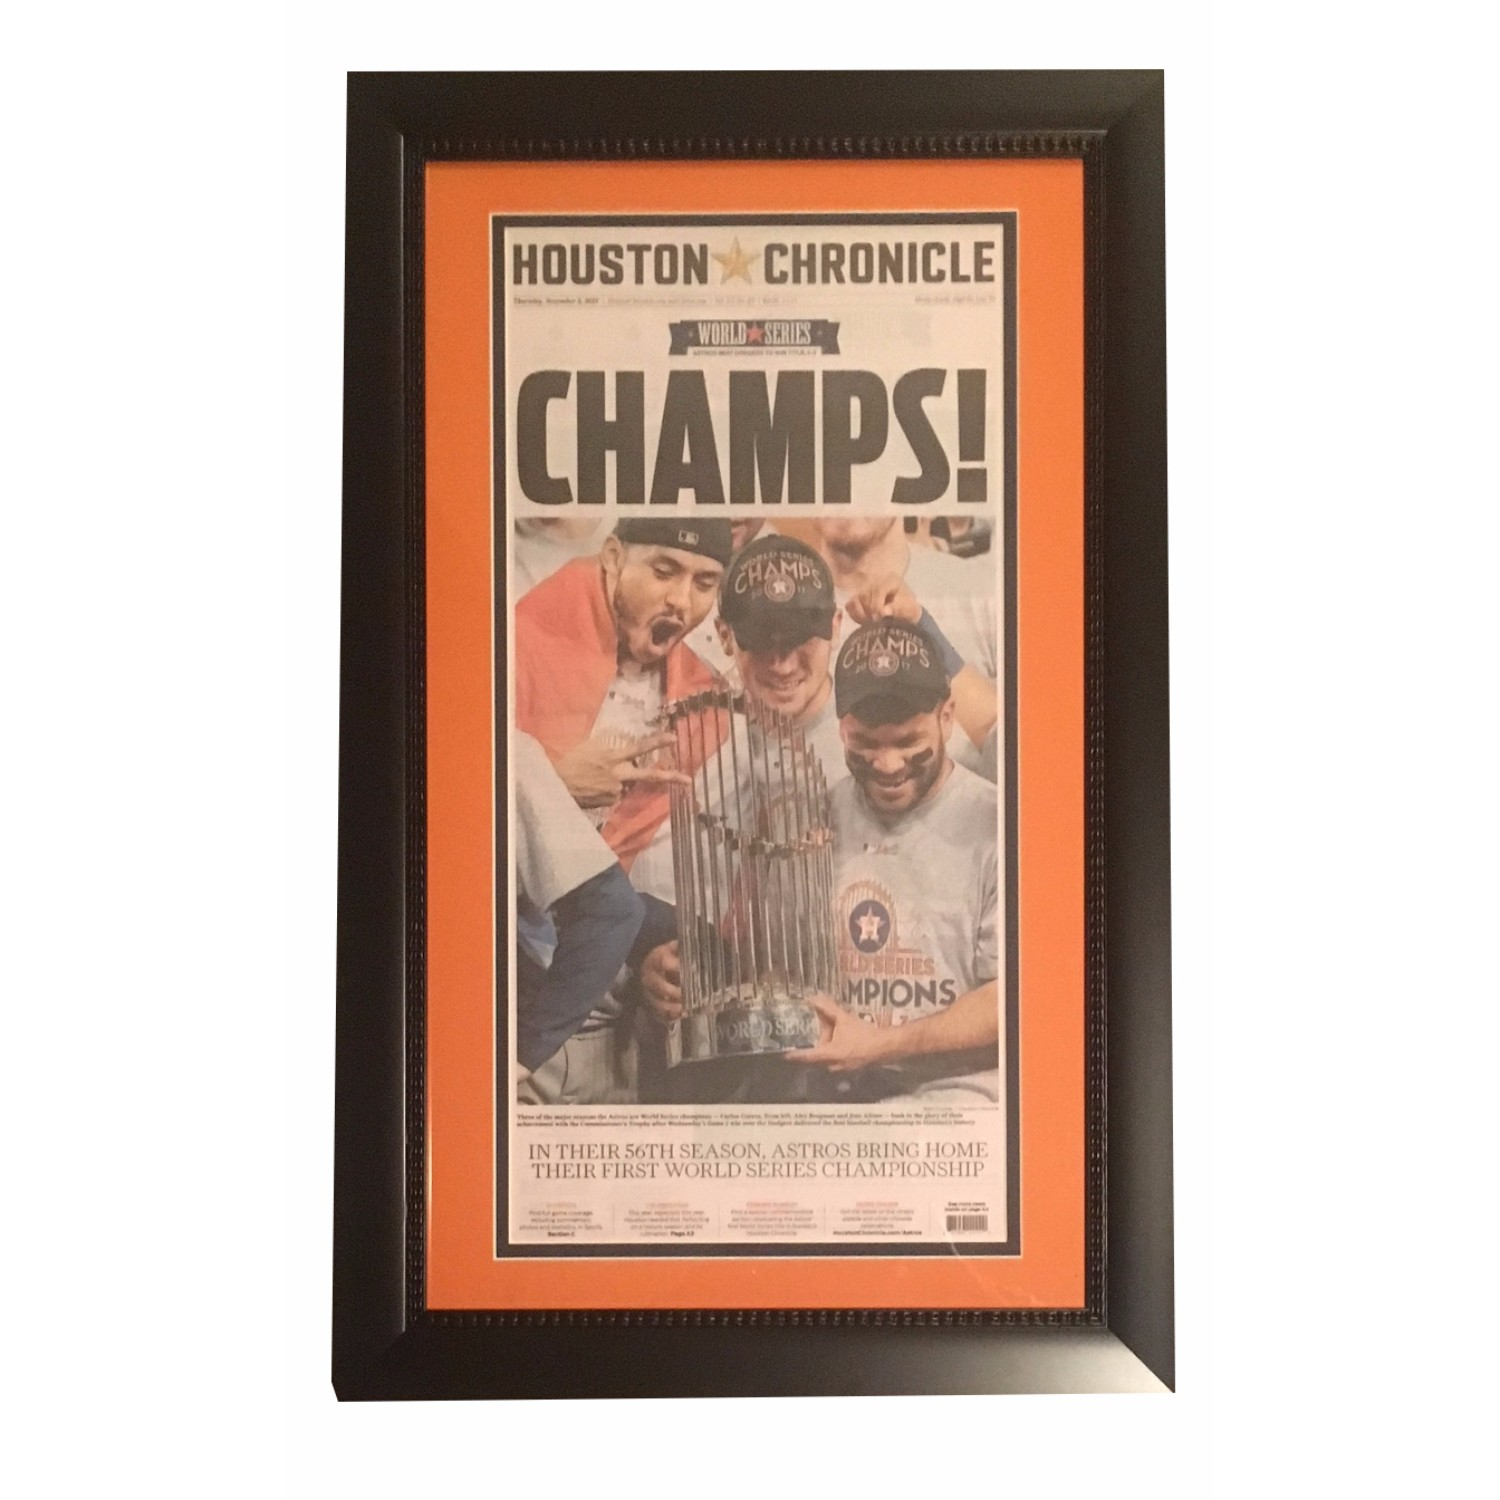 Houston Chronicle Astros 2017 World Series Champs Baseball Framed Newspaper In 2017 the Houston Astros won their 1st World Series championship.  Celebrate this incredible win with the original front page framed of the Houston Chronicle the day after they won the championship.  Black frame measures 16x26